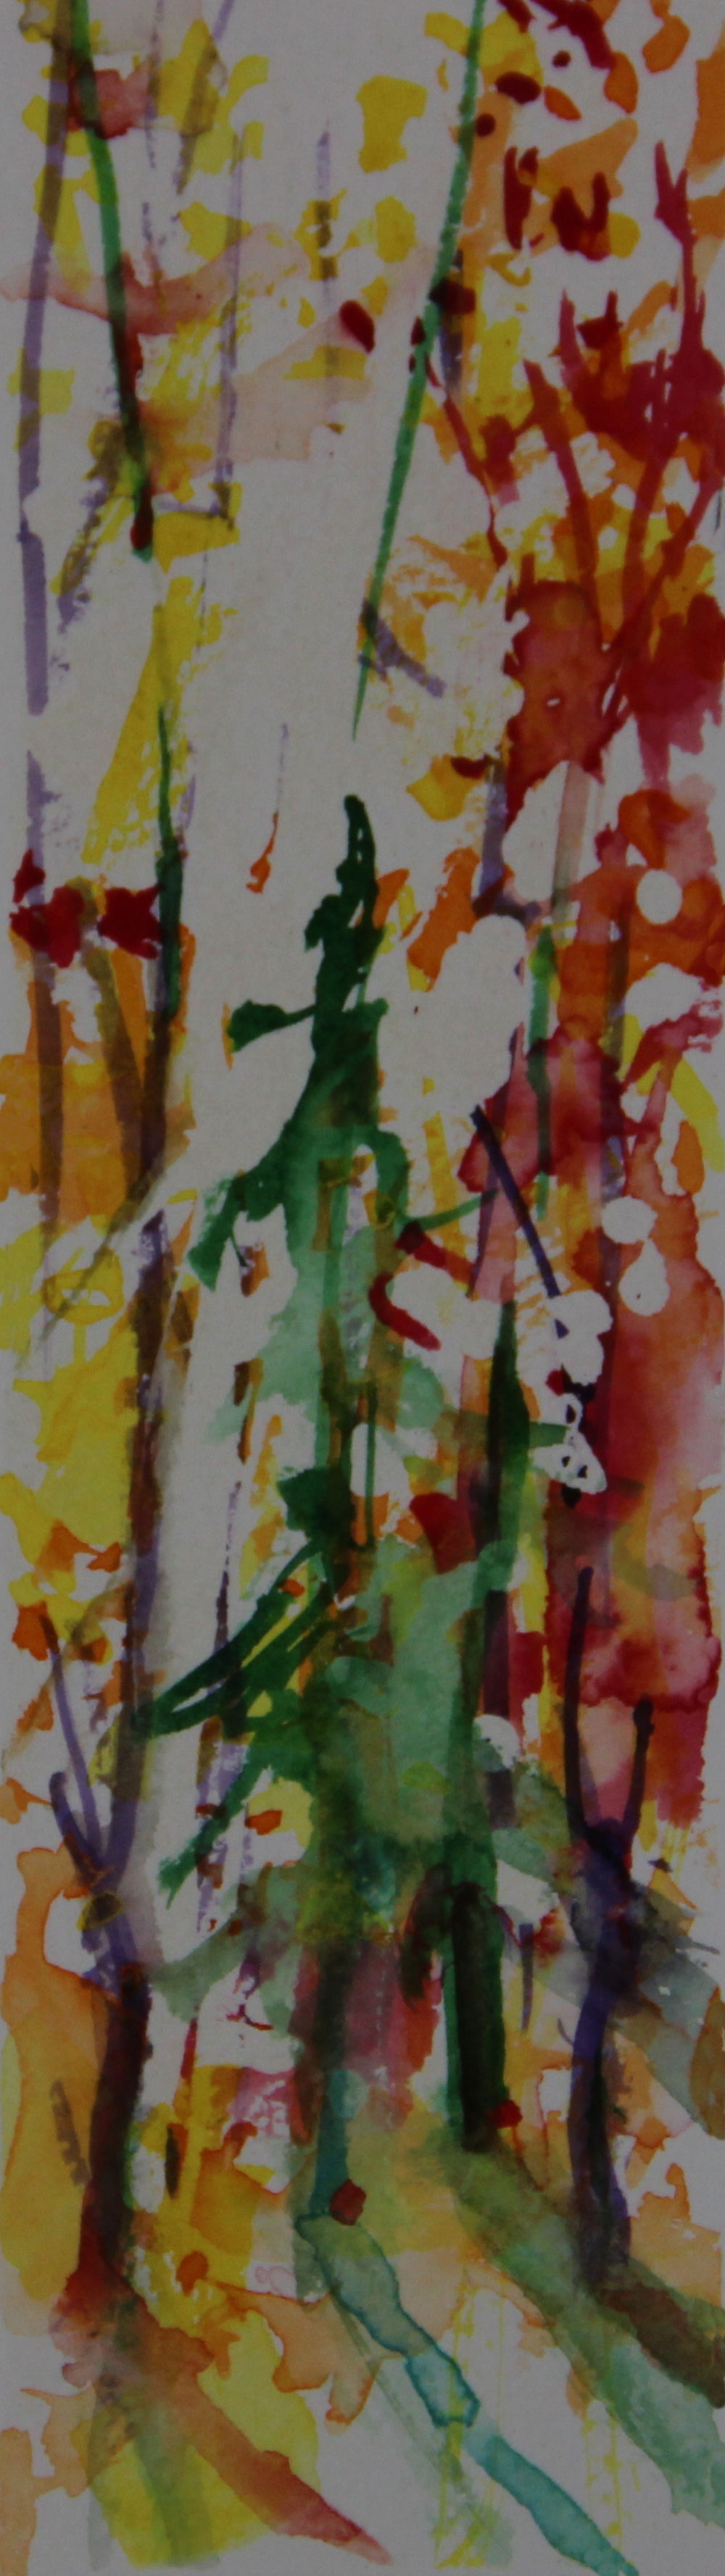 Autumn Forest Scene 01, about 6H x 2W inches watercolors on 140 lb cold pressed